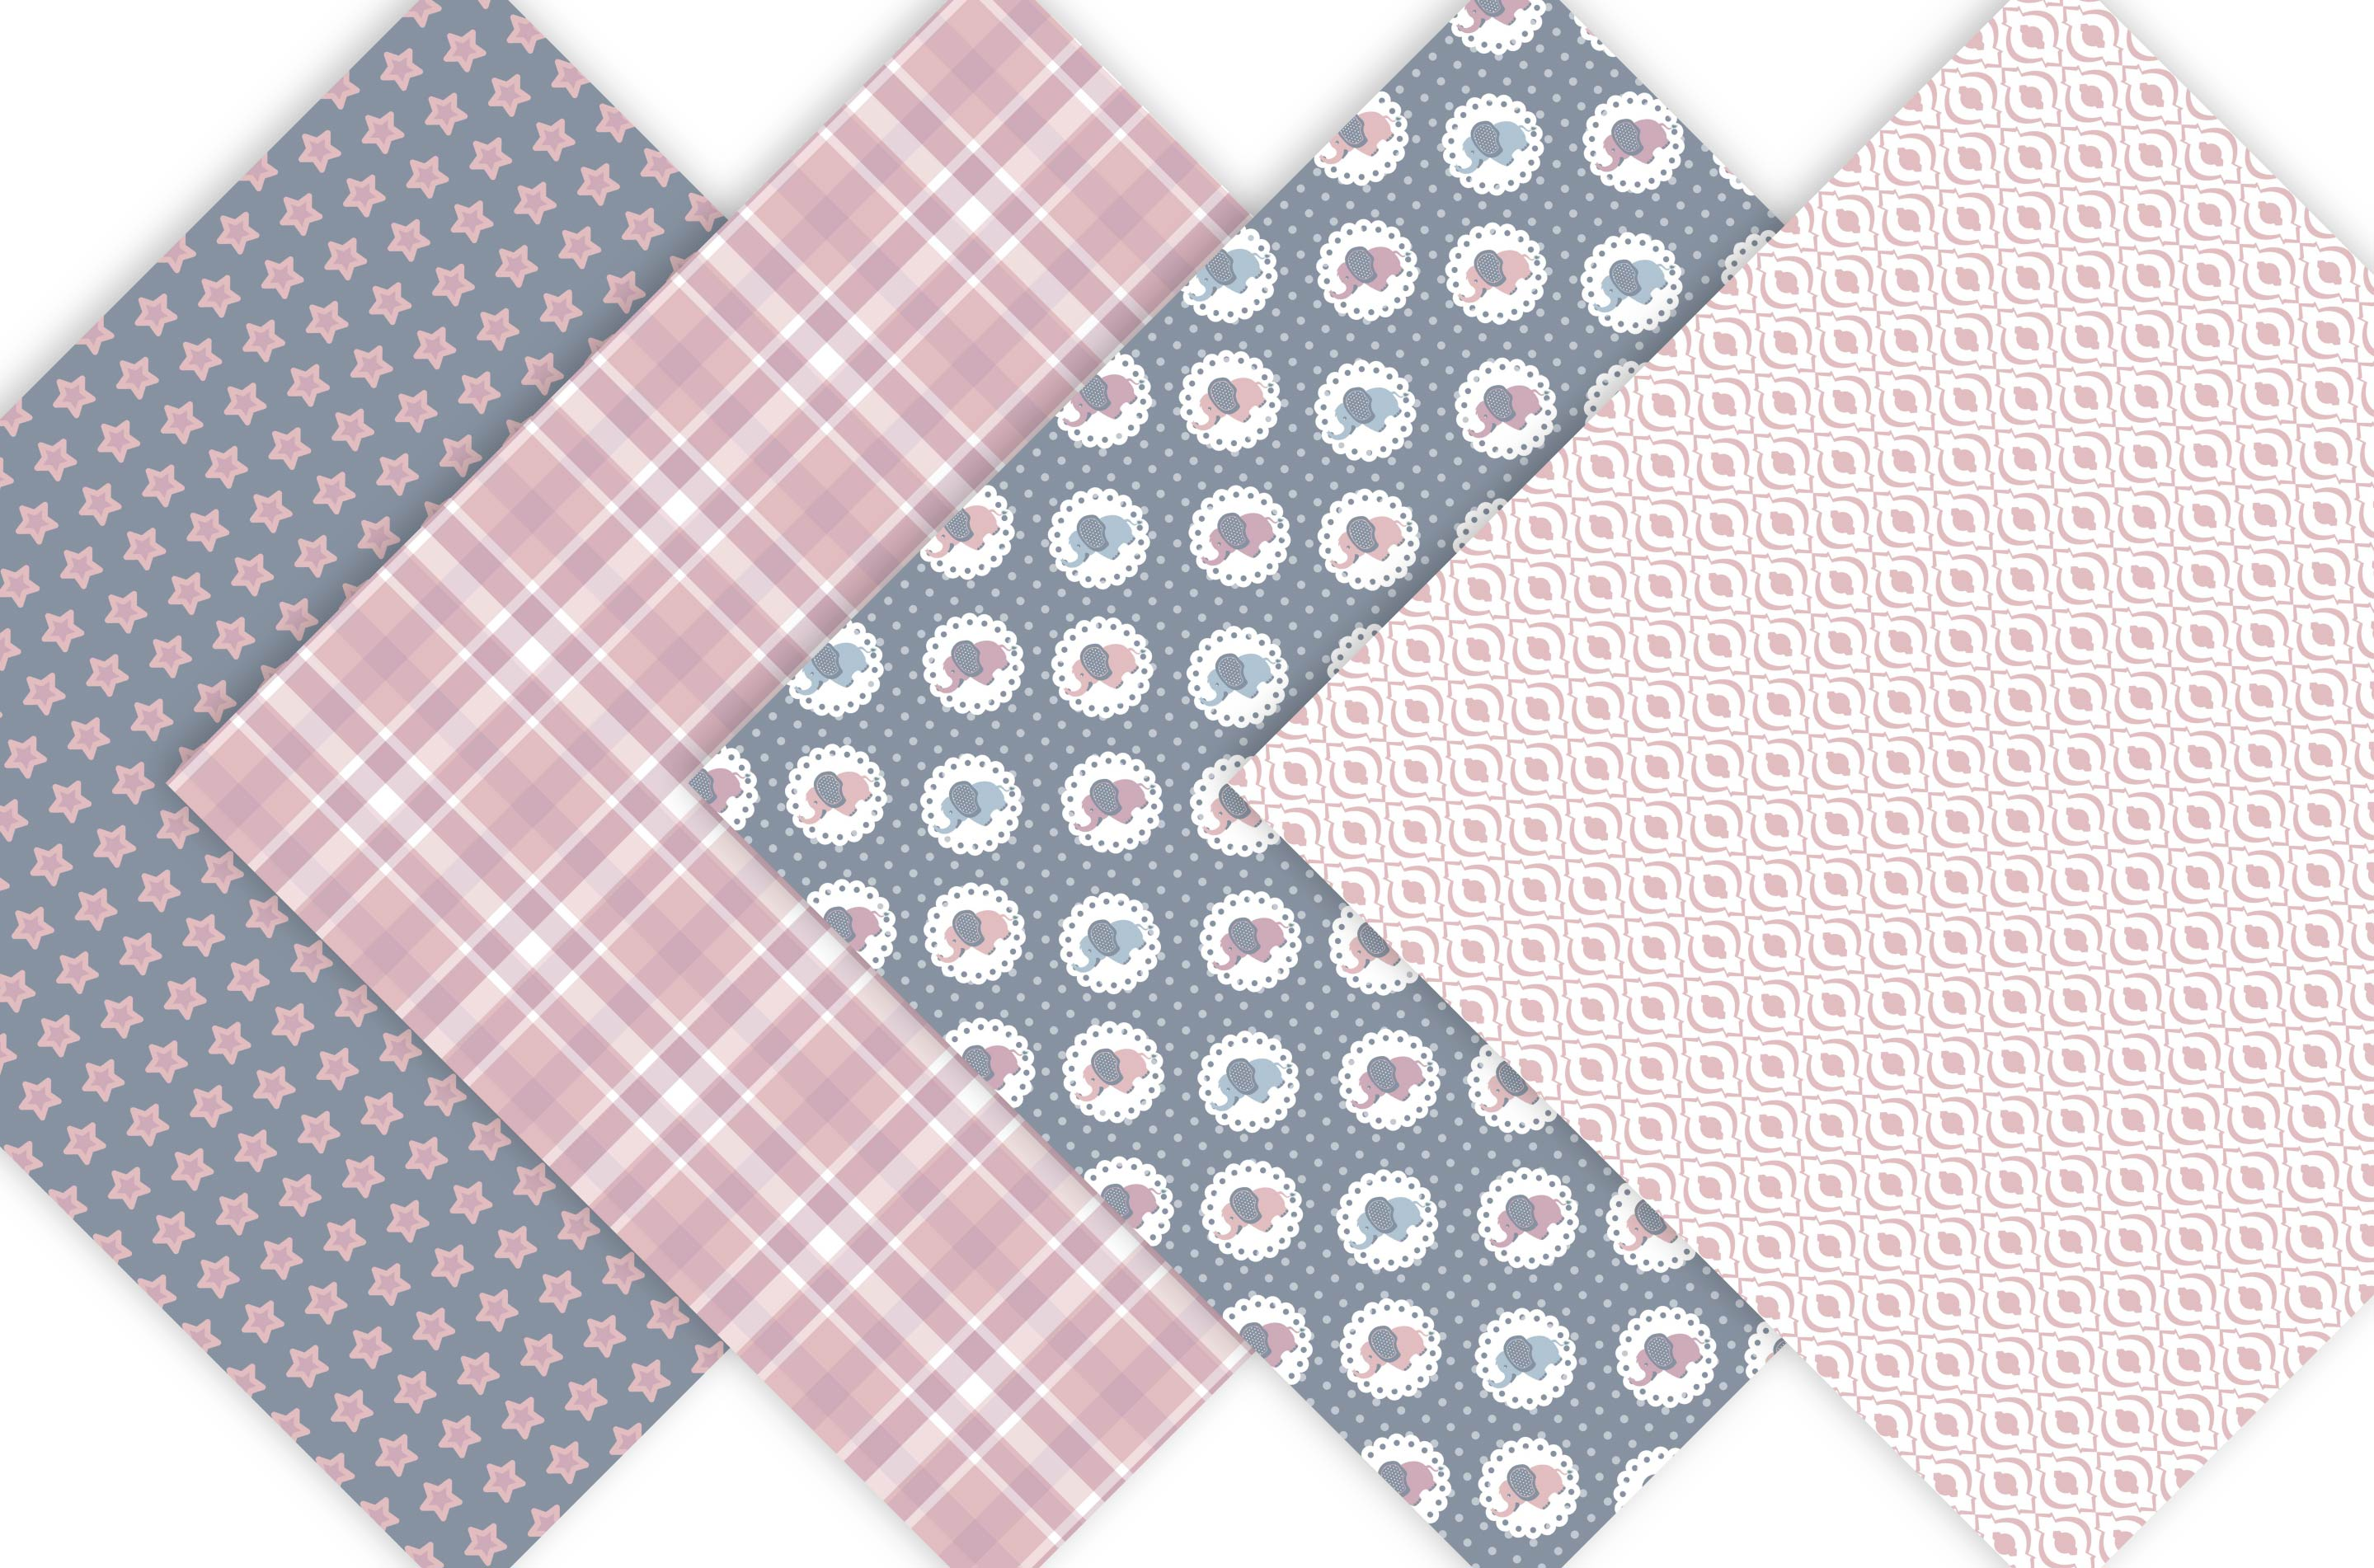 Baby Elephant Digital Paper Patterns - Pink example image 2